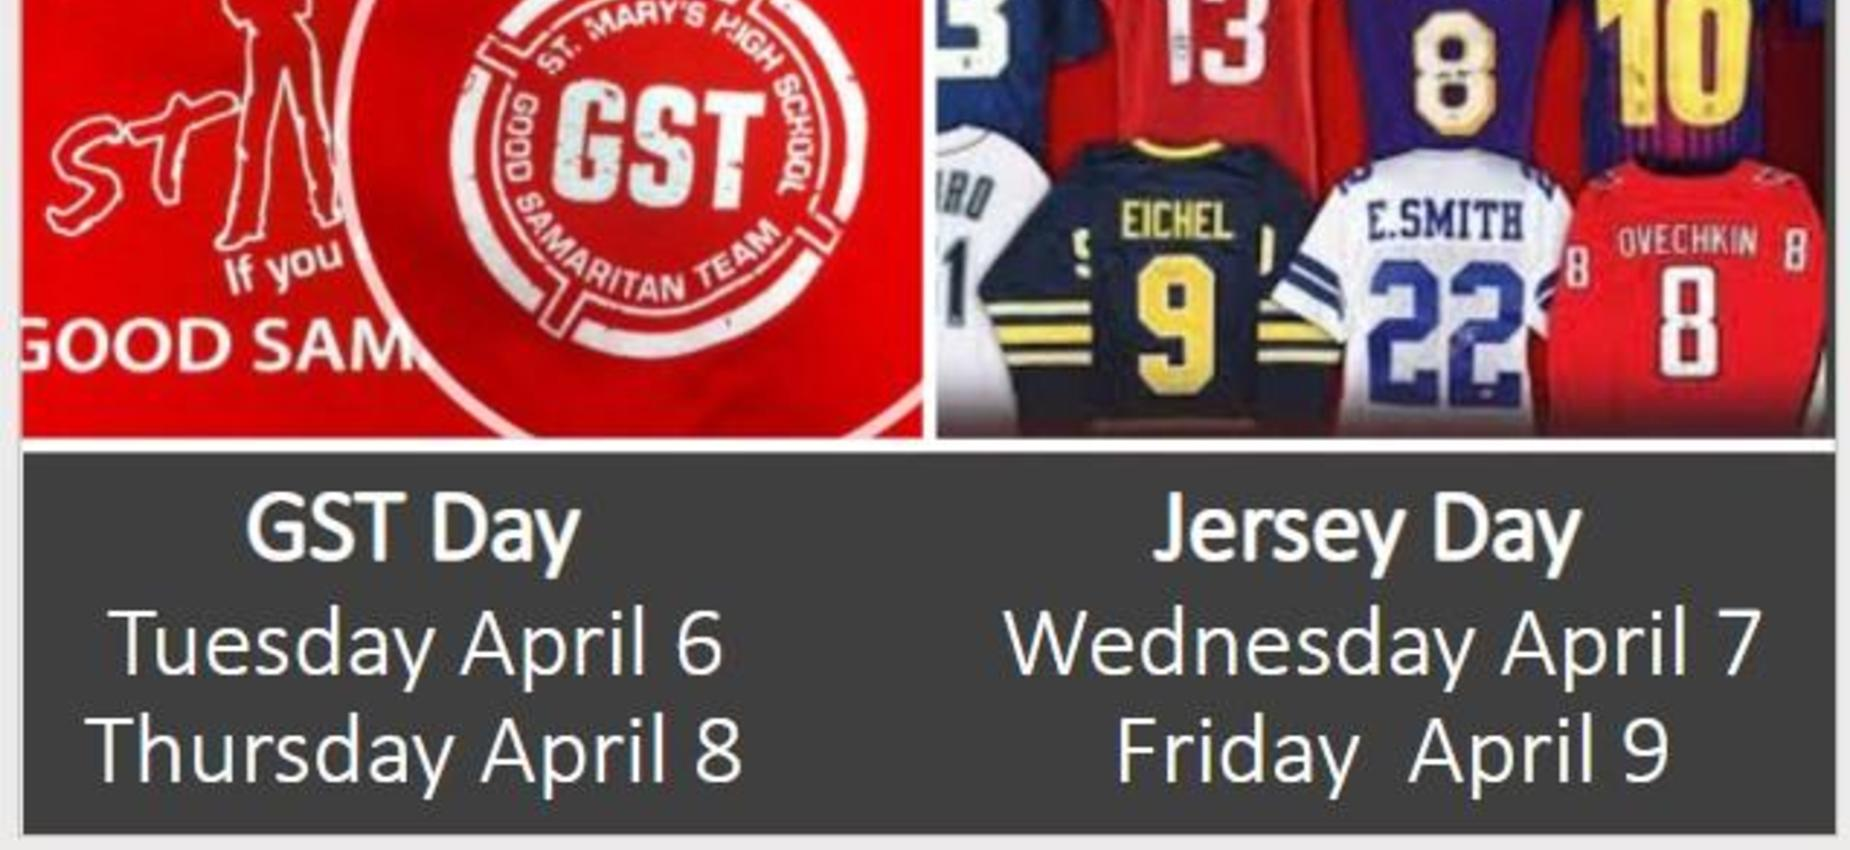 gst and jersey days at smhs